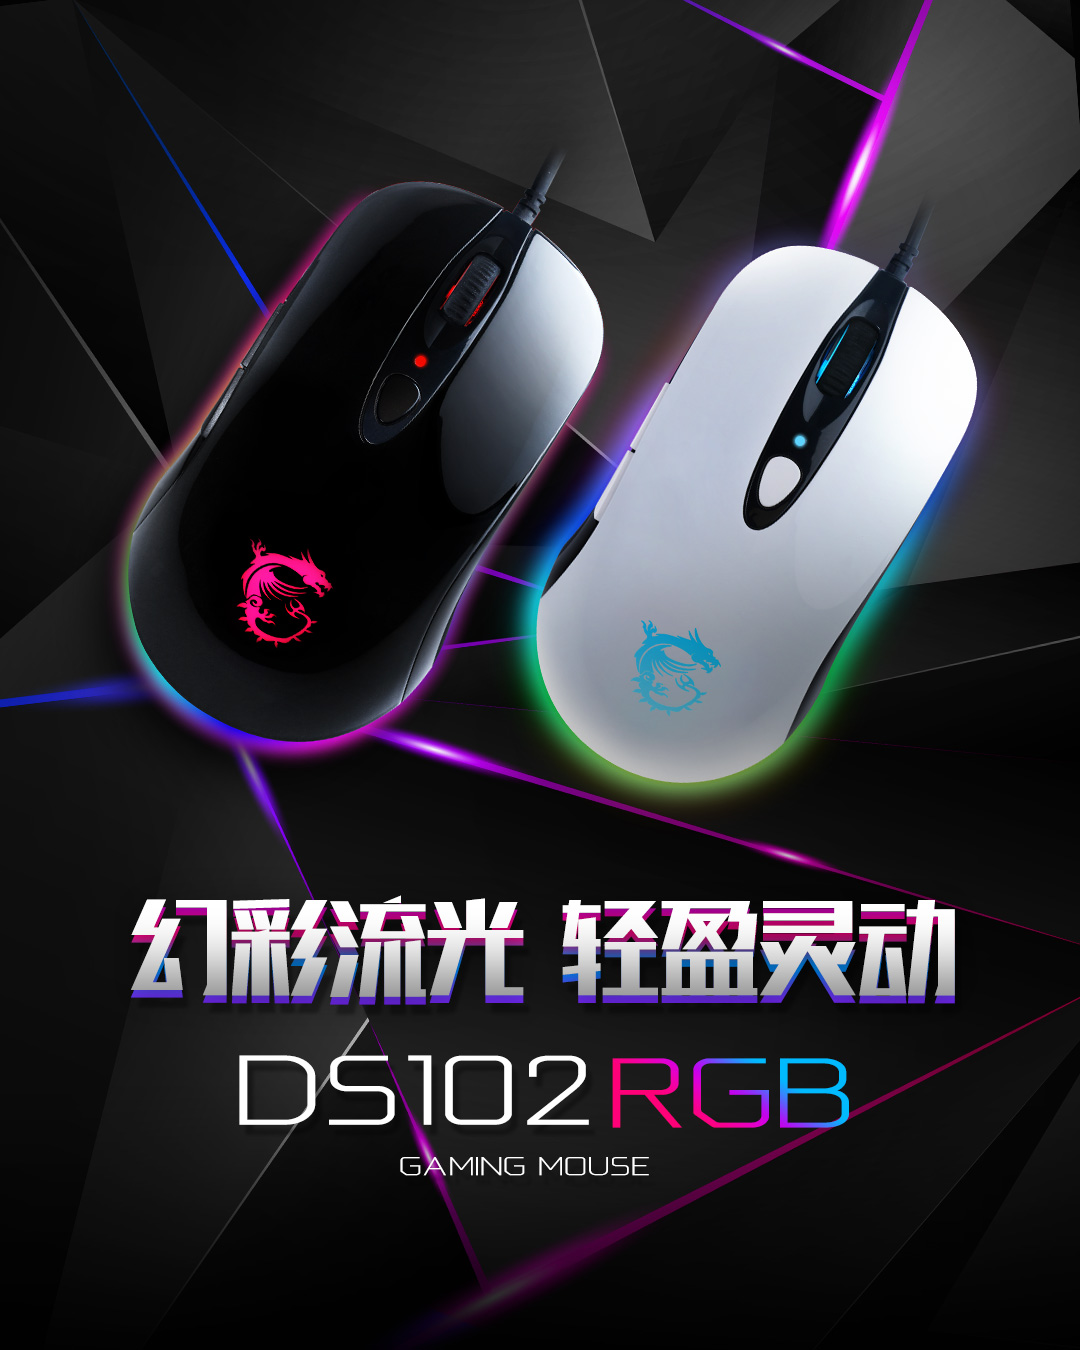 DS102 RGB Gaming Mouse